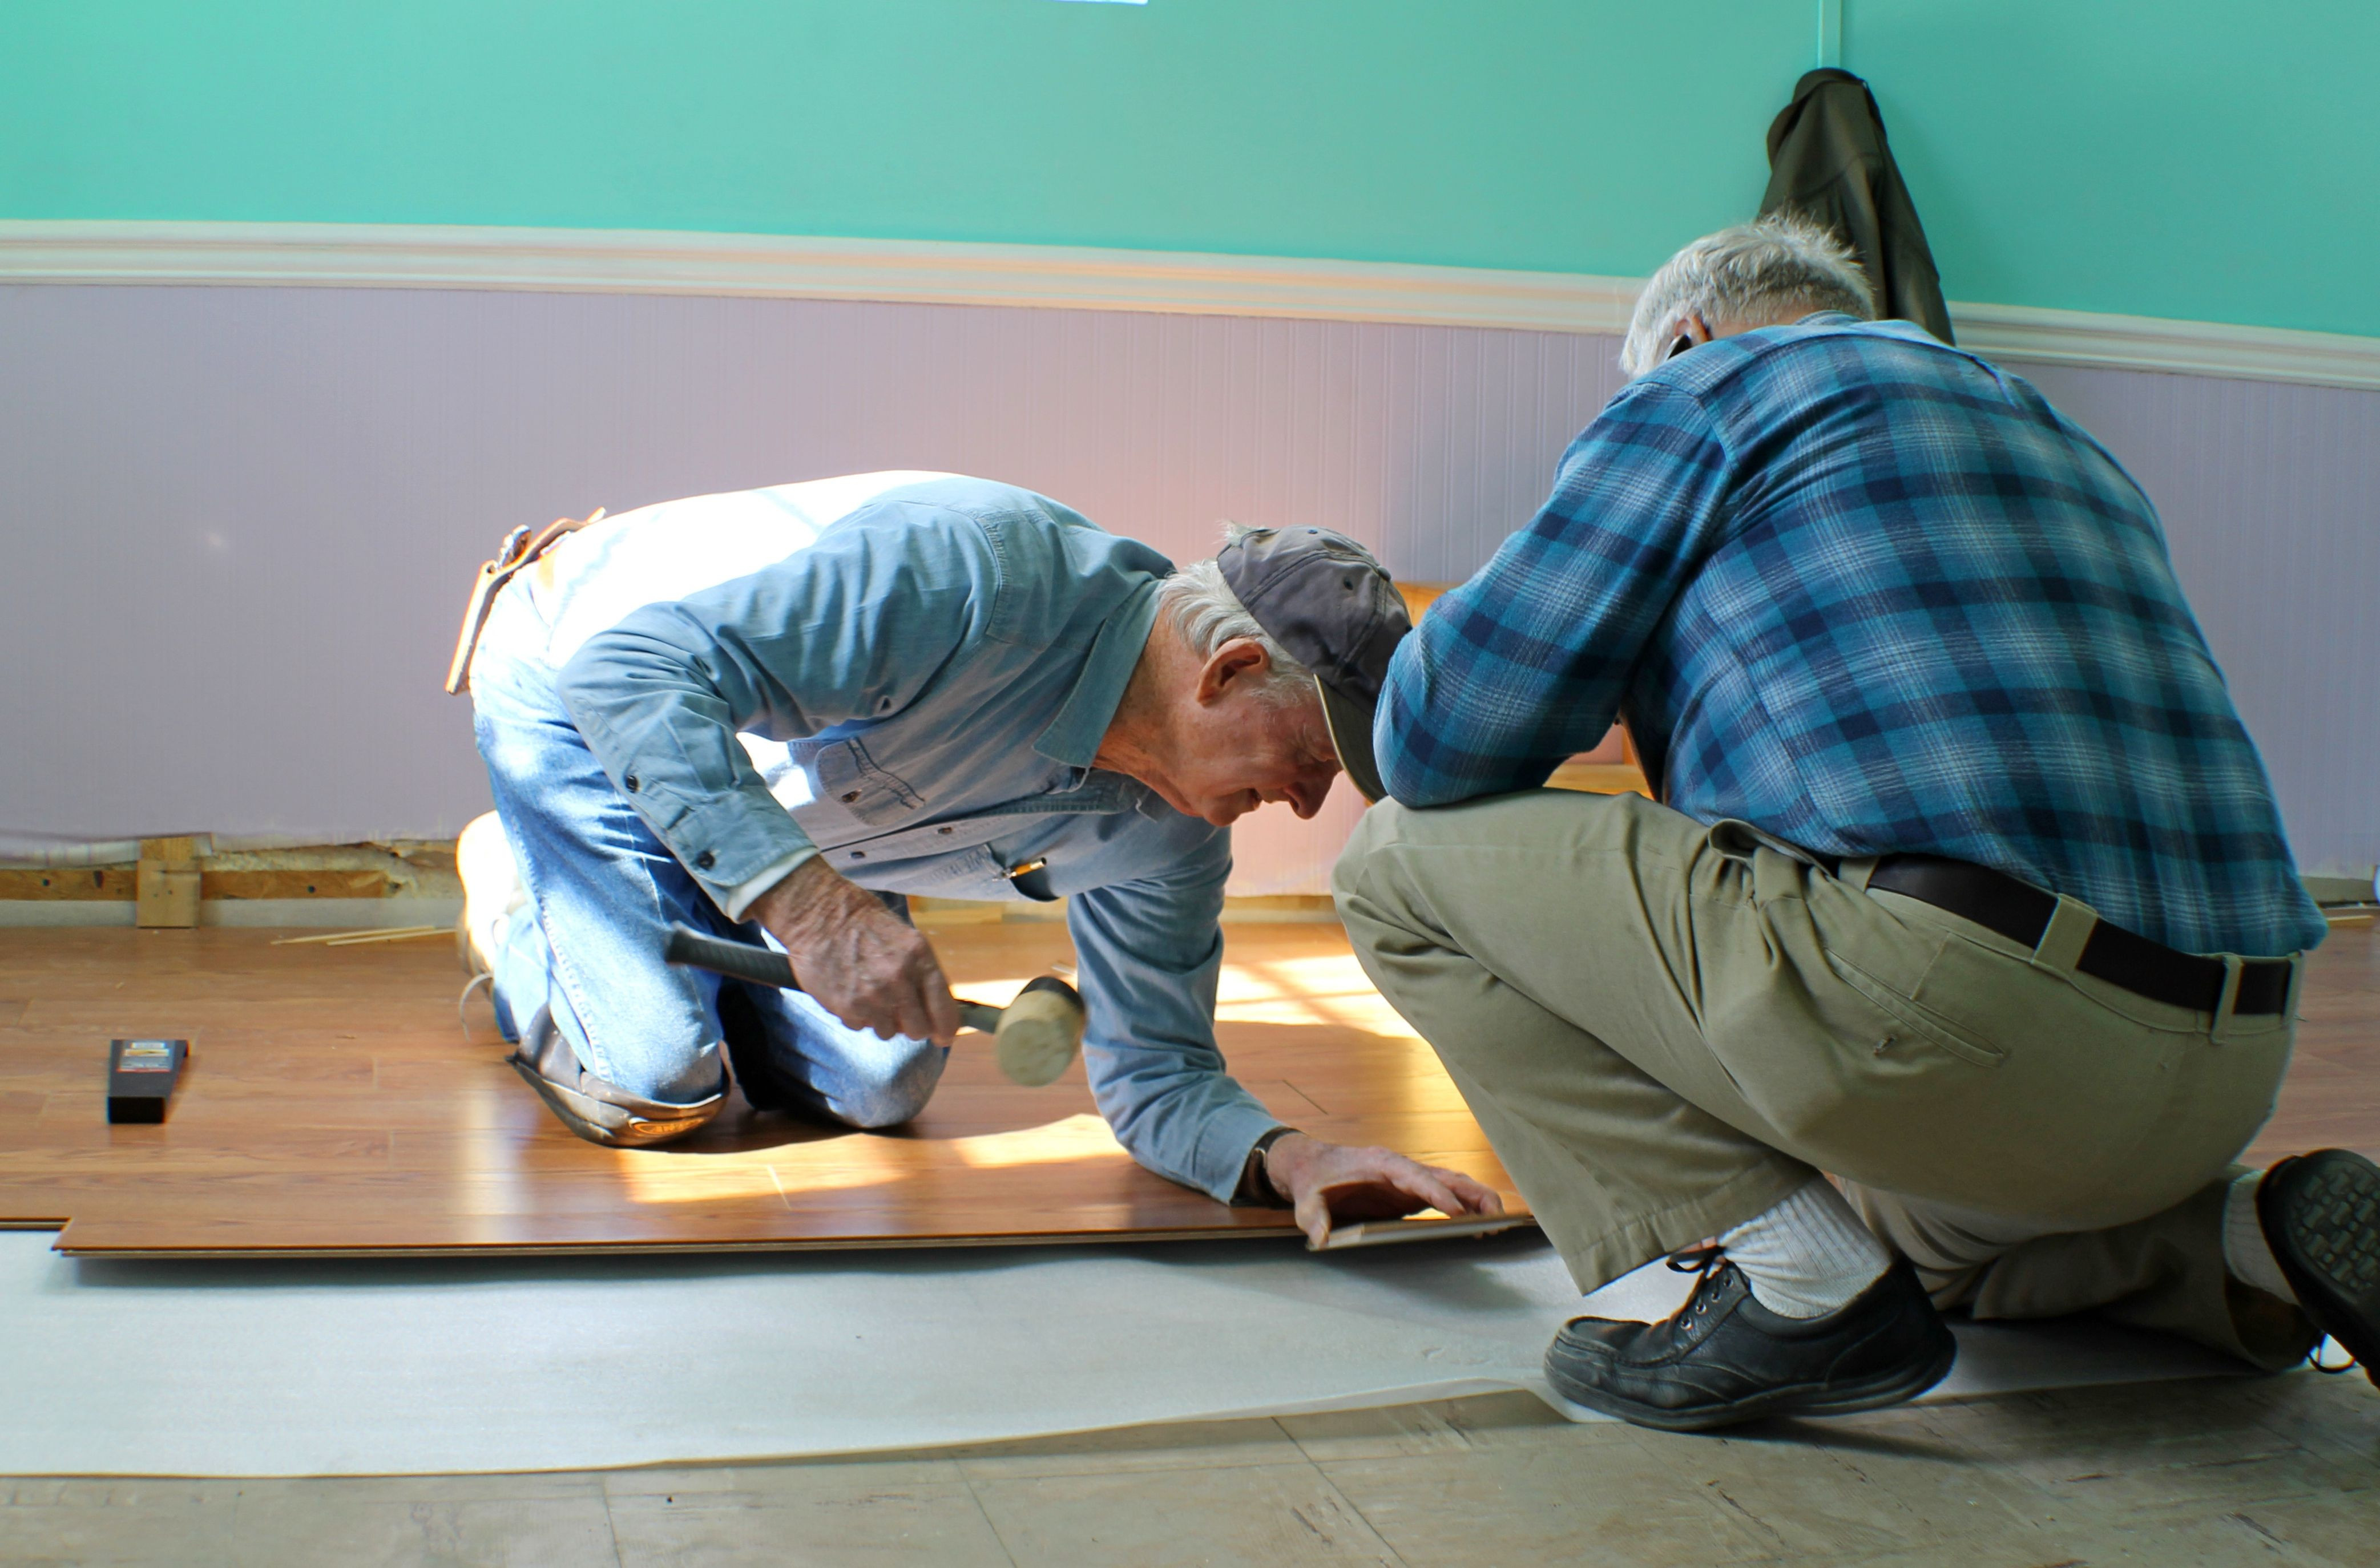 cost to refinish hardwood floors diy of common flooring types currently used in renovation and building with laminate floor assembly setting tongue and groove 5ba27f2146e0fb00241f7302 jpg